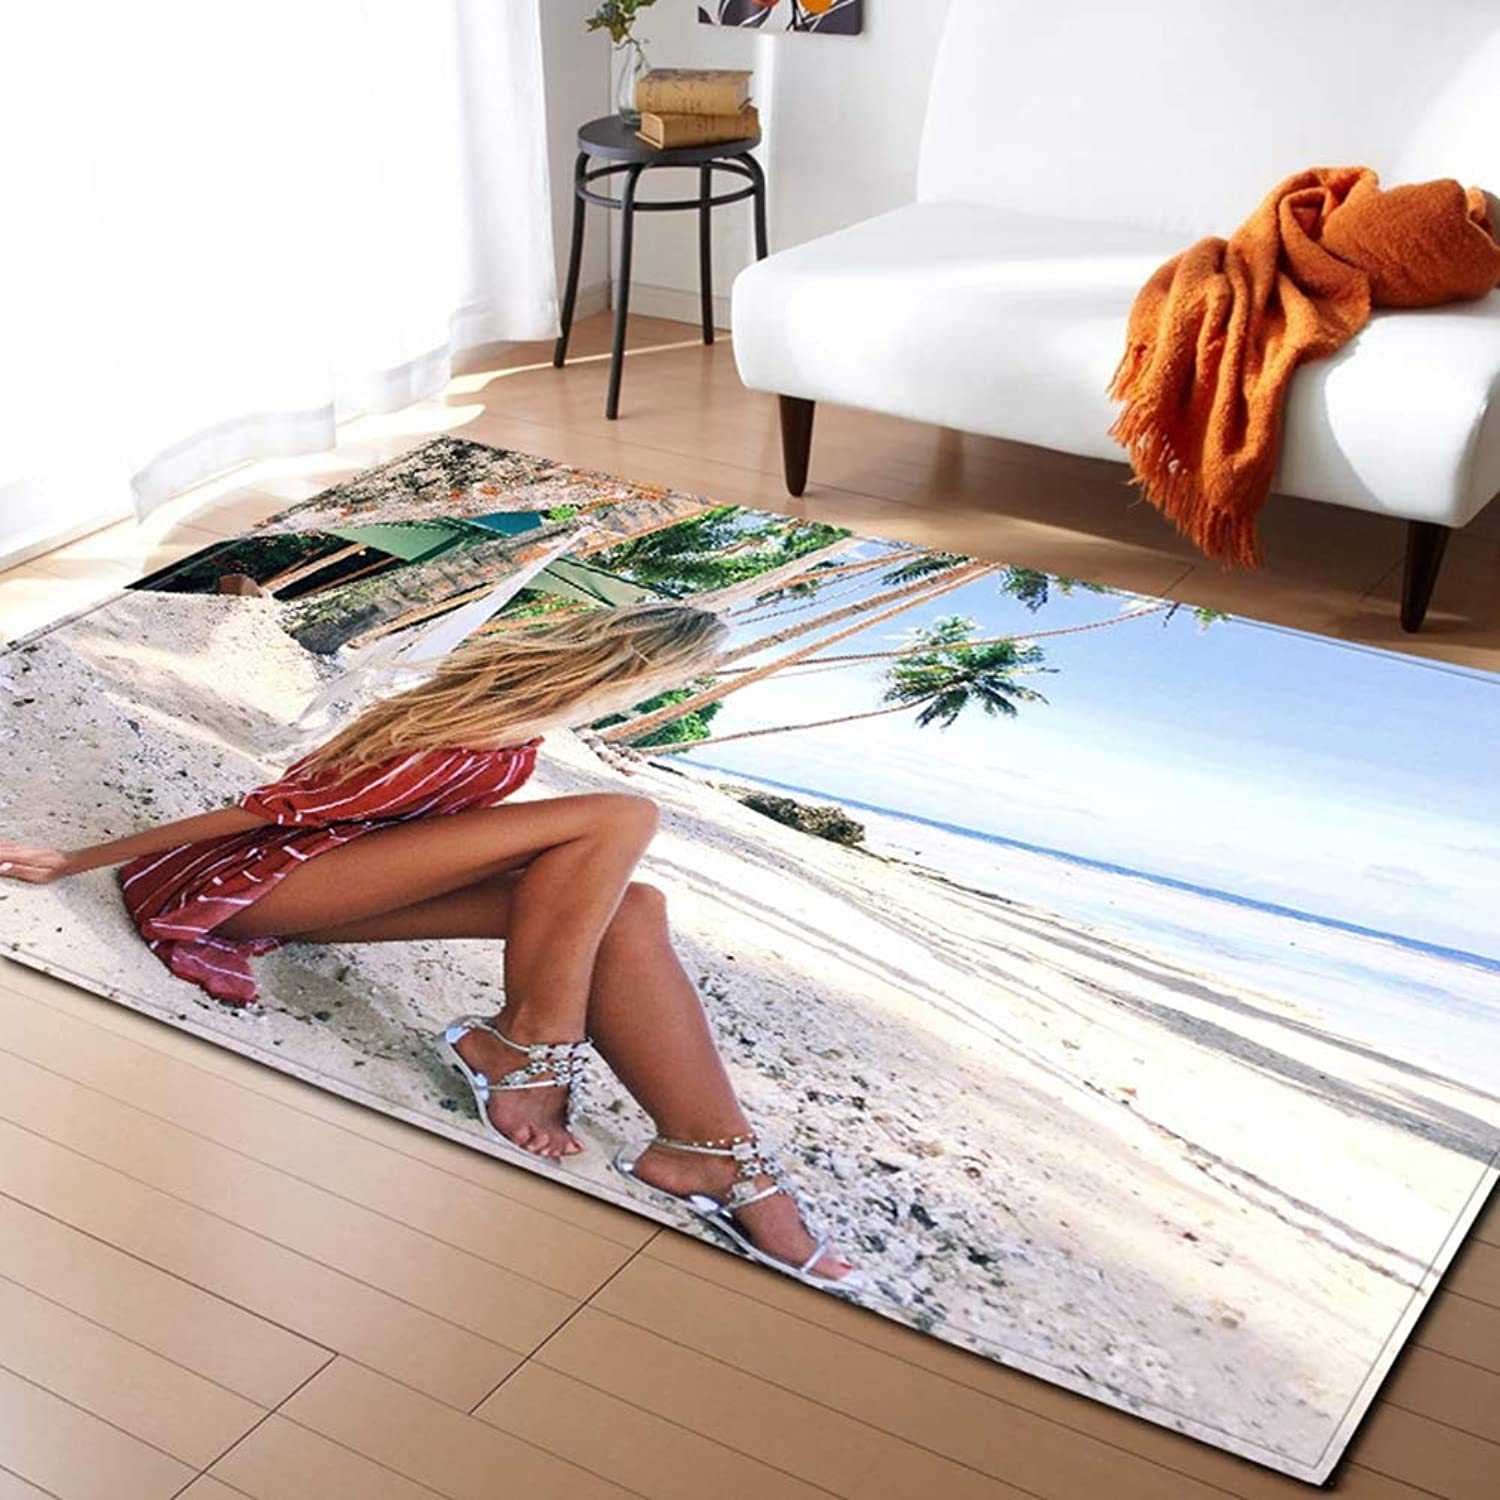 3D Area Rug Non-Slip Doormat Carpet Sexy and Elegant Women Printing for Living Room Bedroom Kitchen Bathroom and Gym,E,200x150cm